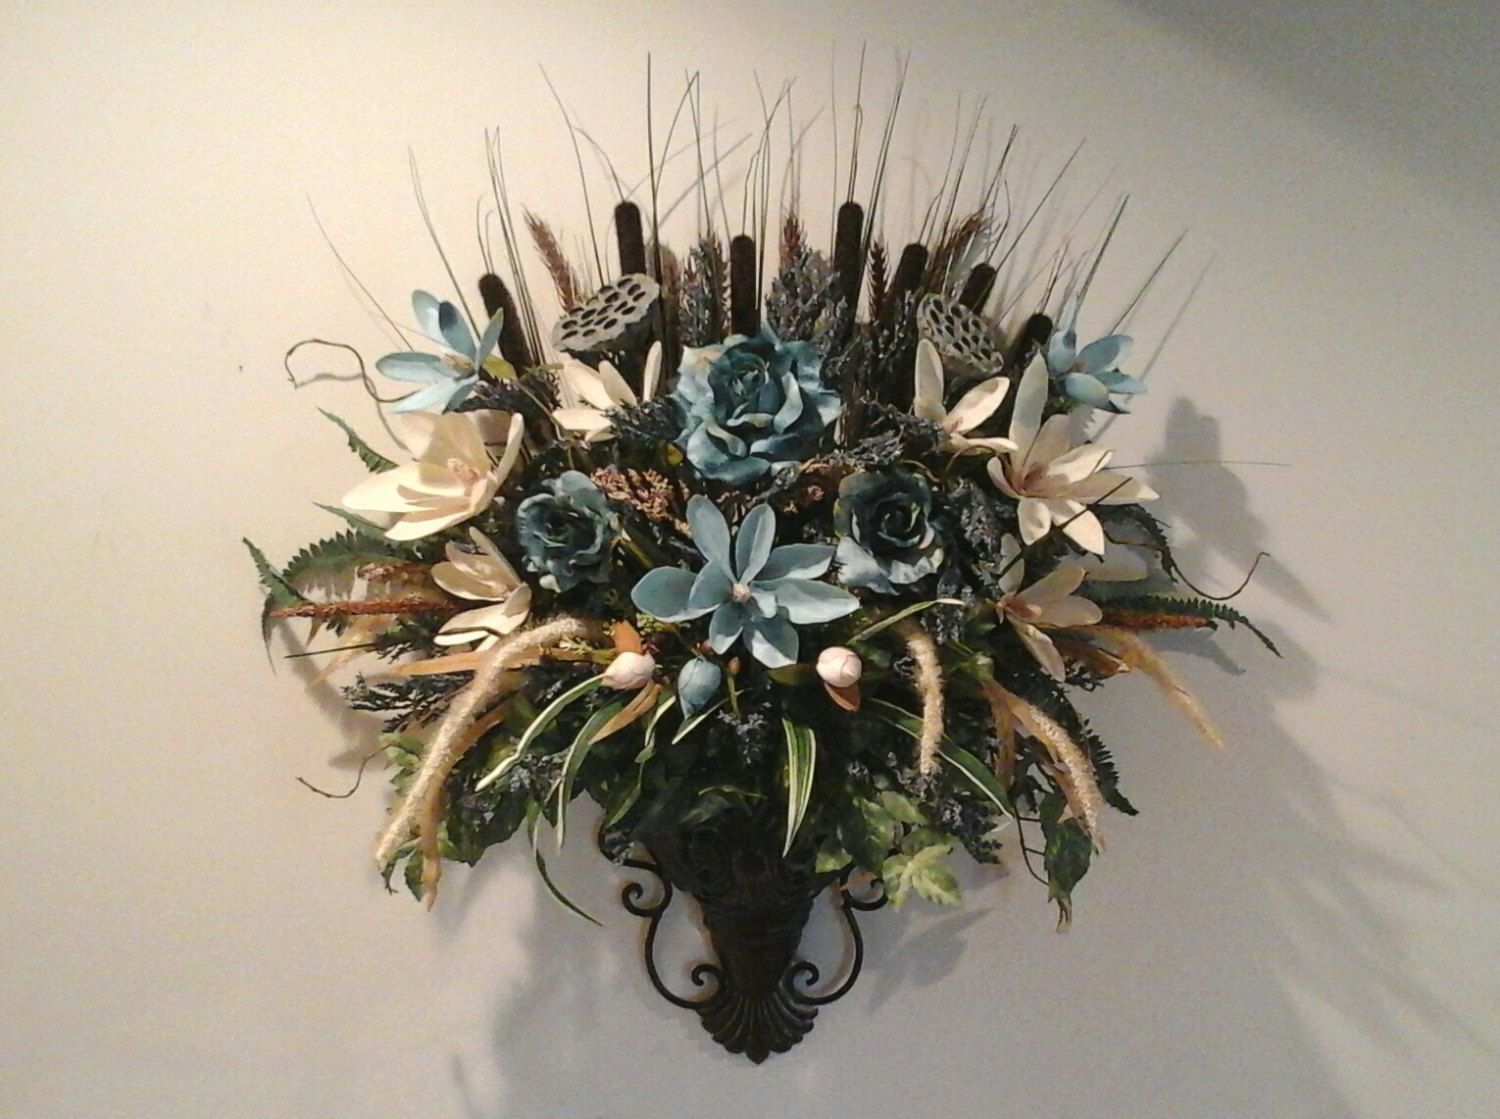 Floral Wall Sconce, Wall Arrangement, SHIPPING INCLUDED ... on Pocket Wall Sconce For Flowers id=88282